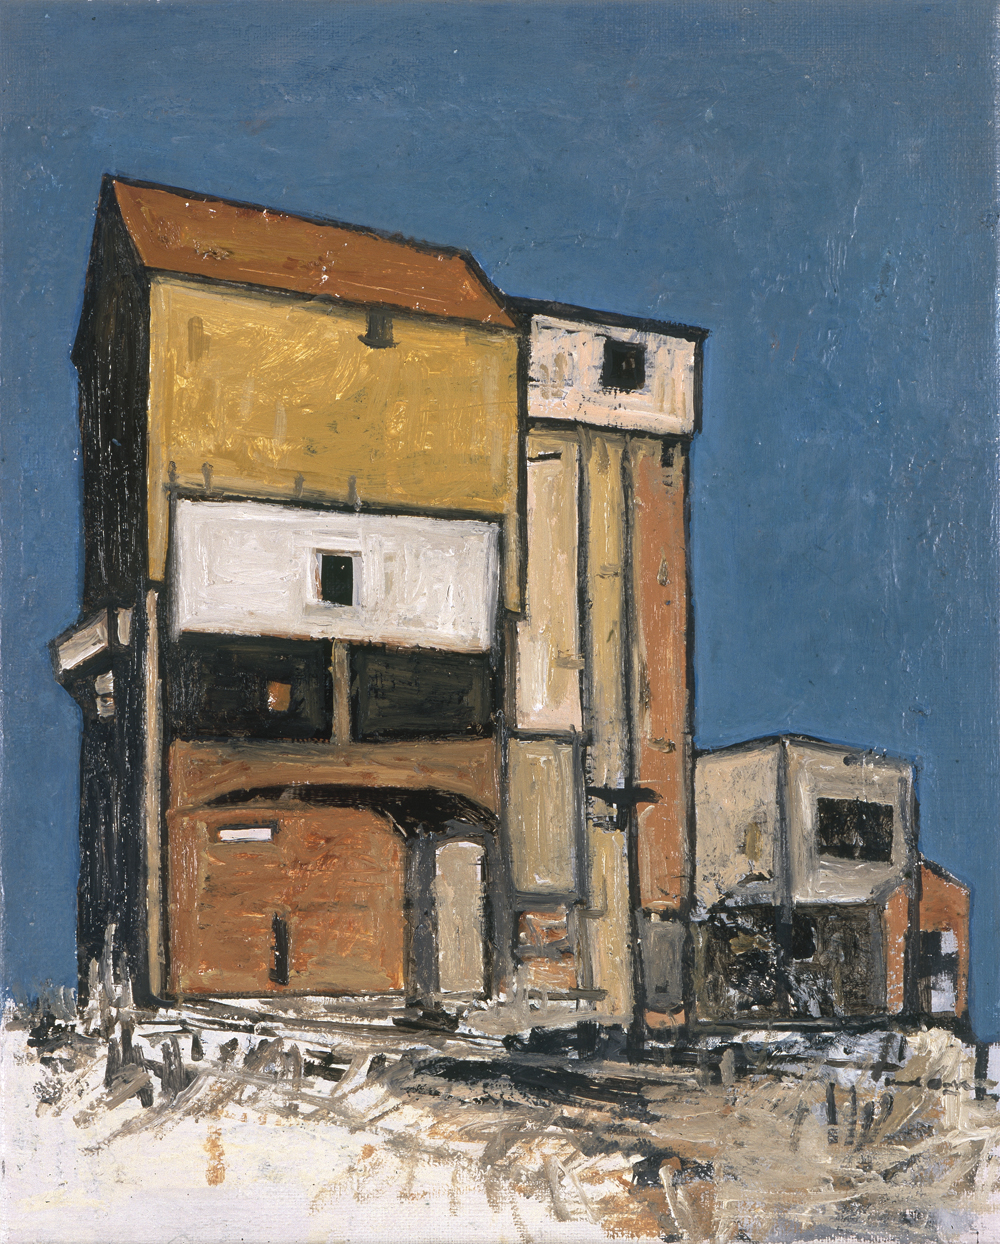 Canvas_Chalkpit silo_40x30cm_Oil_2000